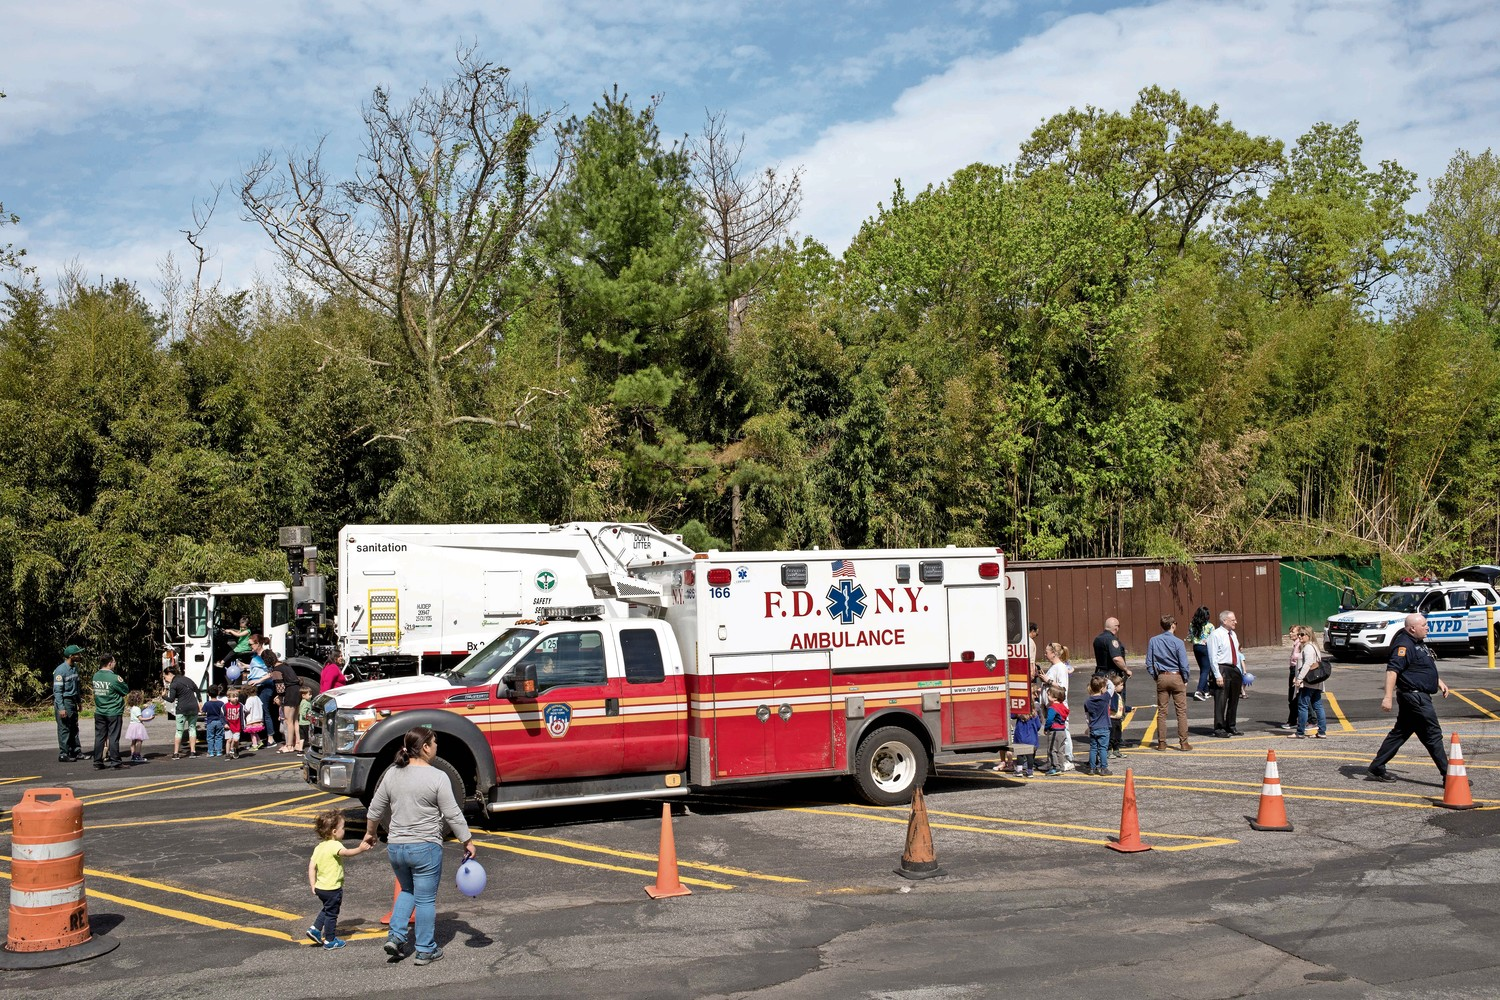 Truck Day brought together vehicles for kids to explore from different municipal agencies, including the fire, police and sanitation departments.